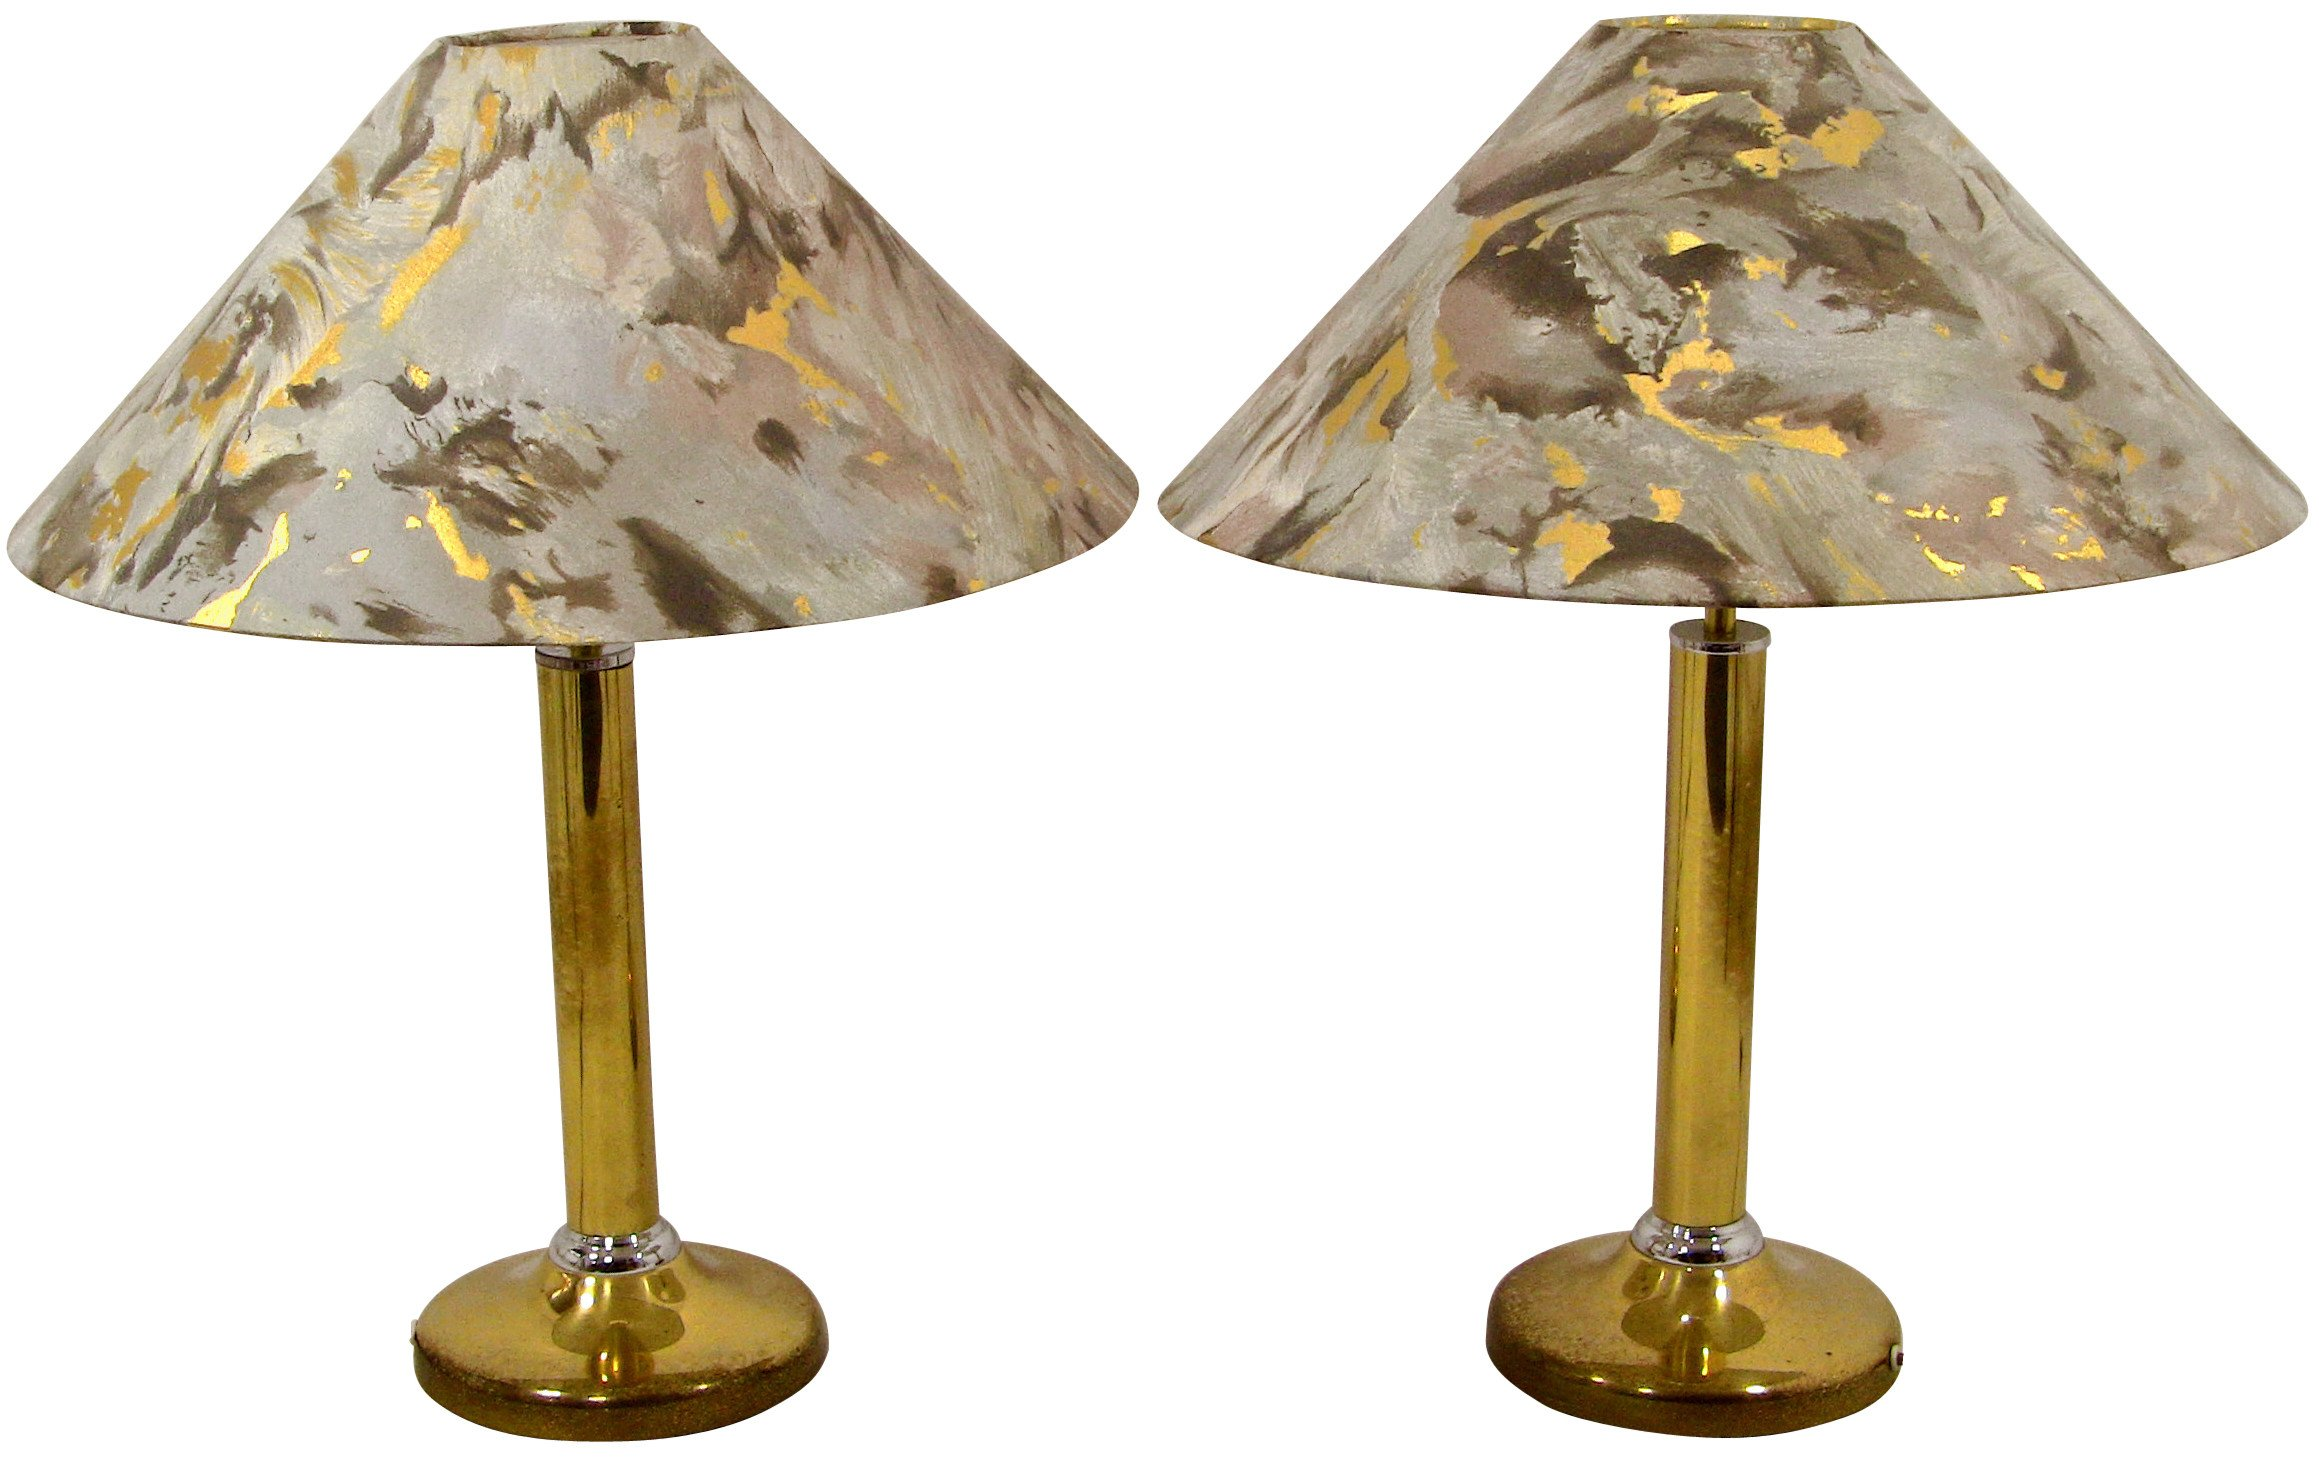 Pair of Bedroom Lamps by J. Busche, 1980s